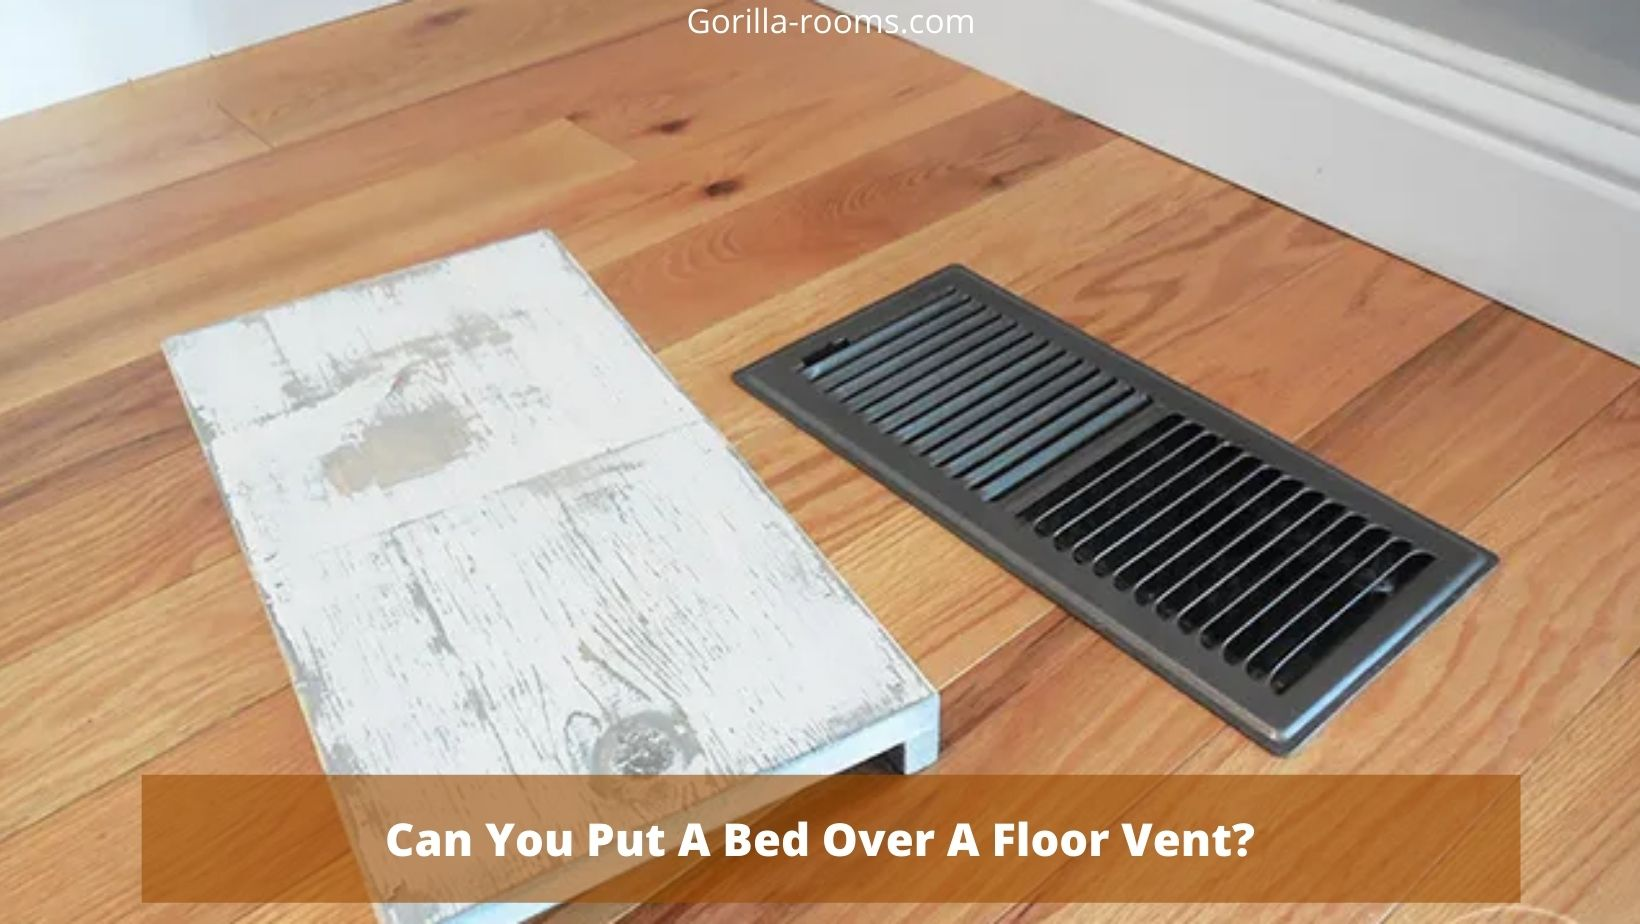 Can You Put A Bed Over A Floor Vent?